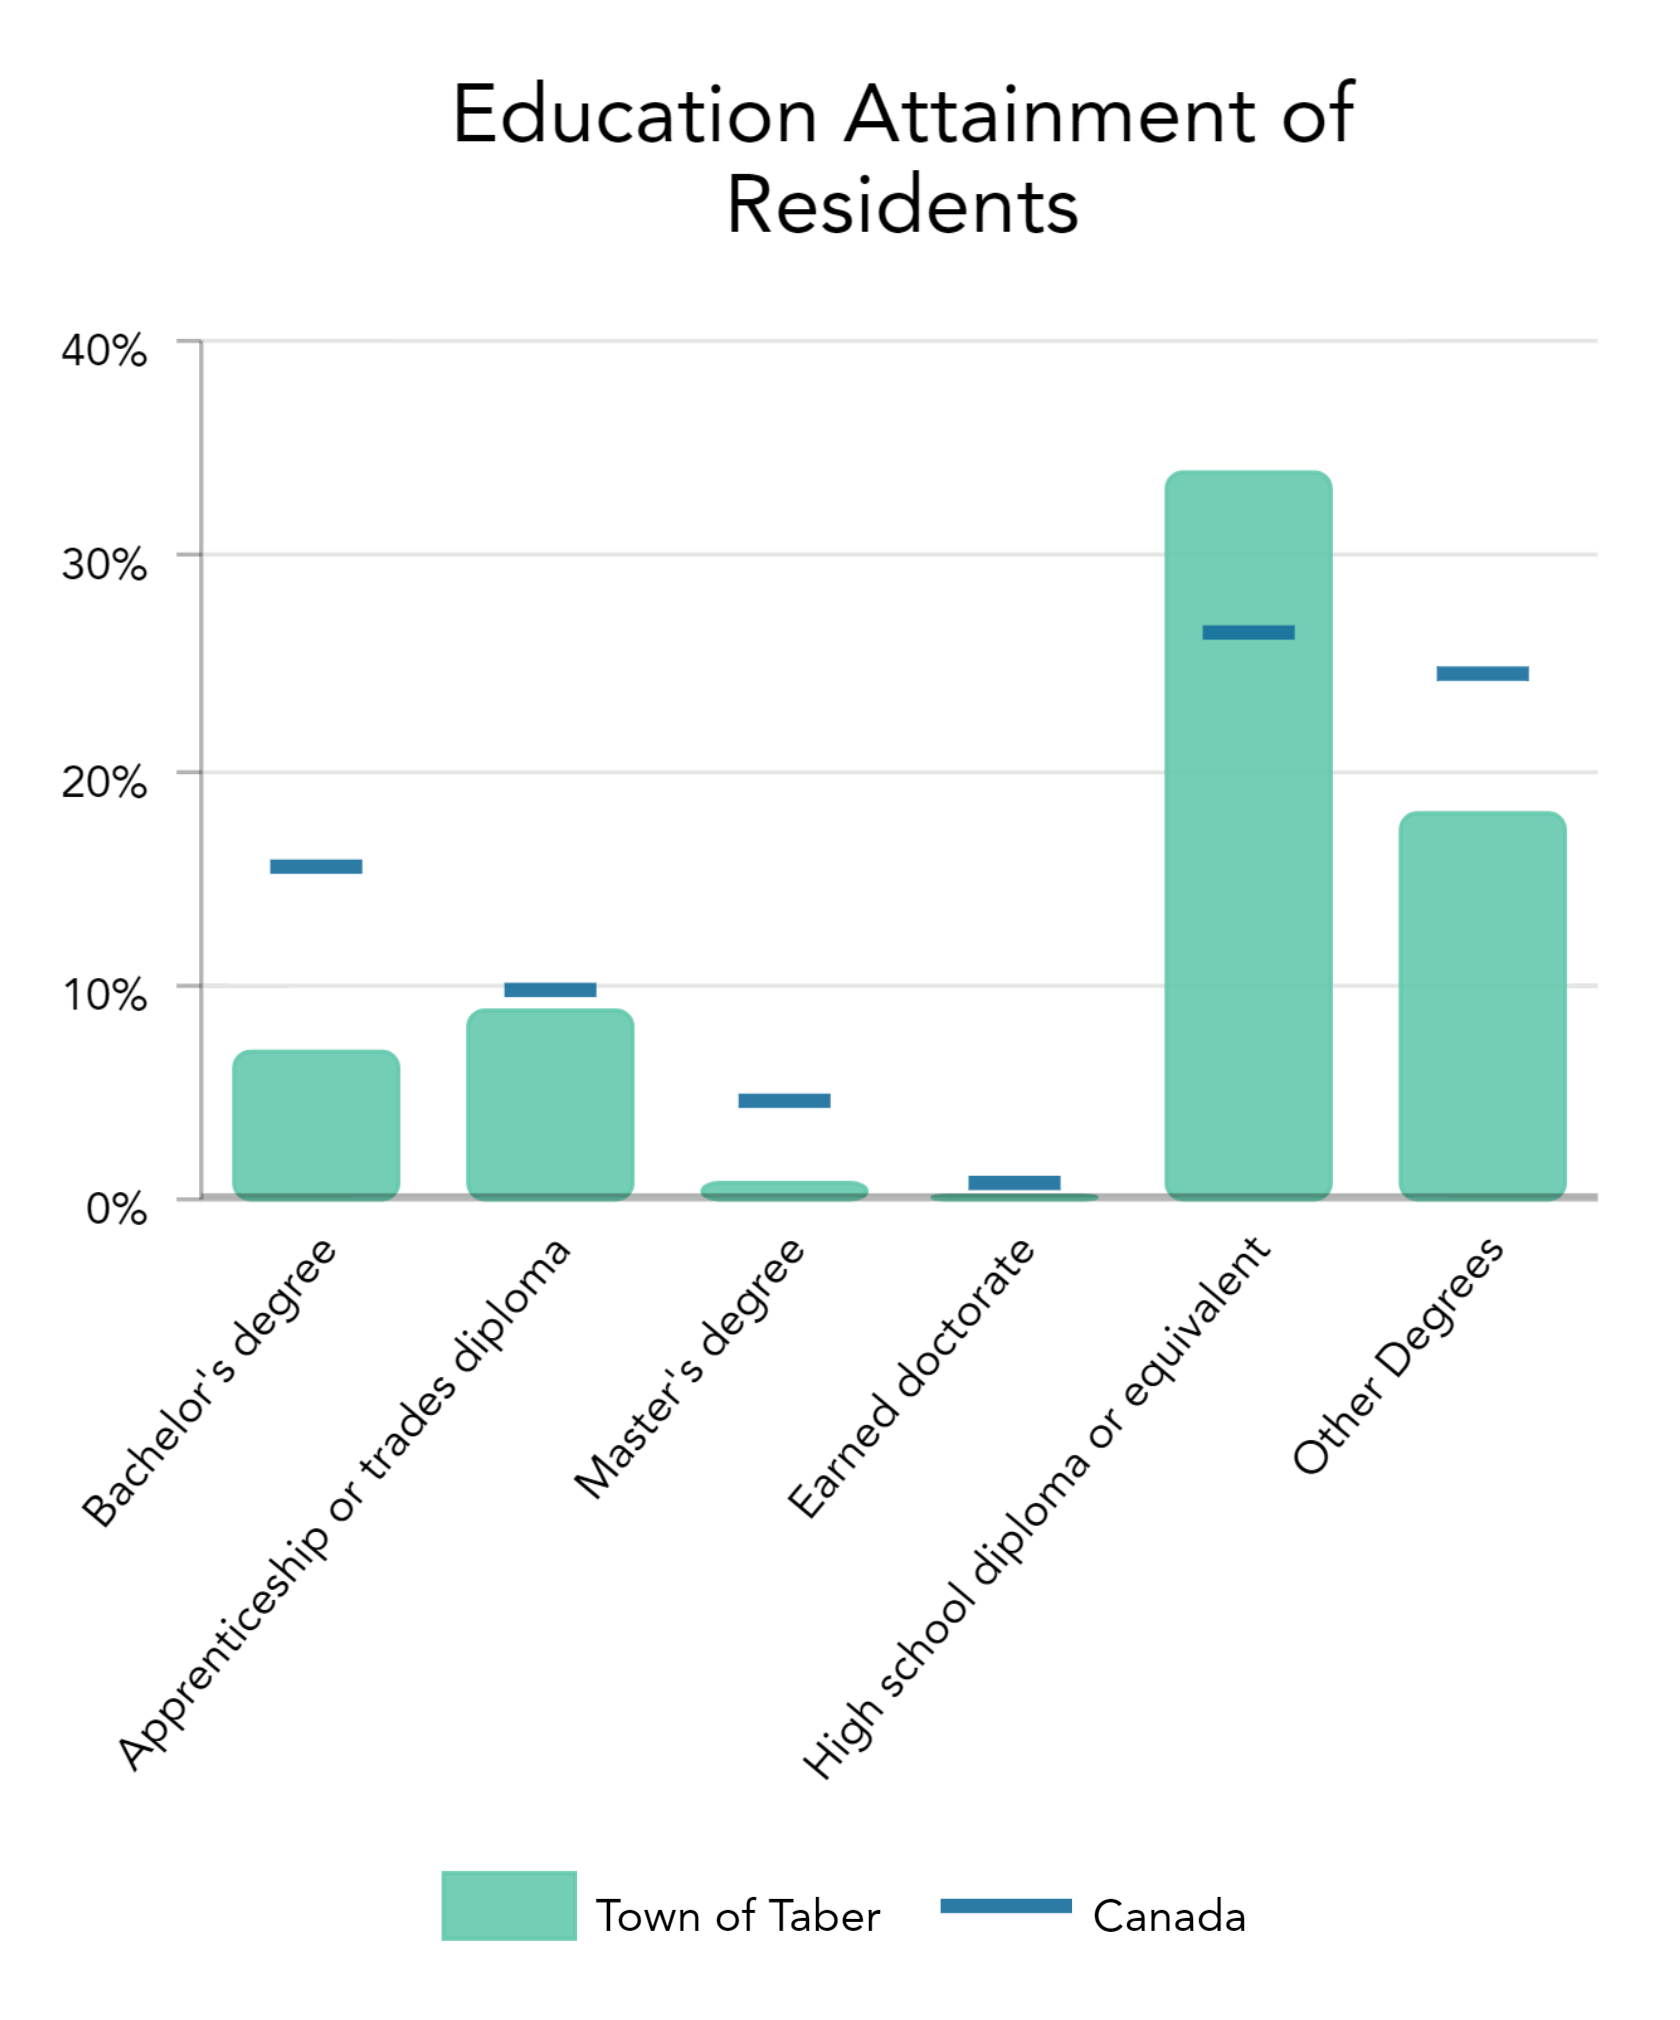 Education Attainment of Residents